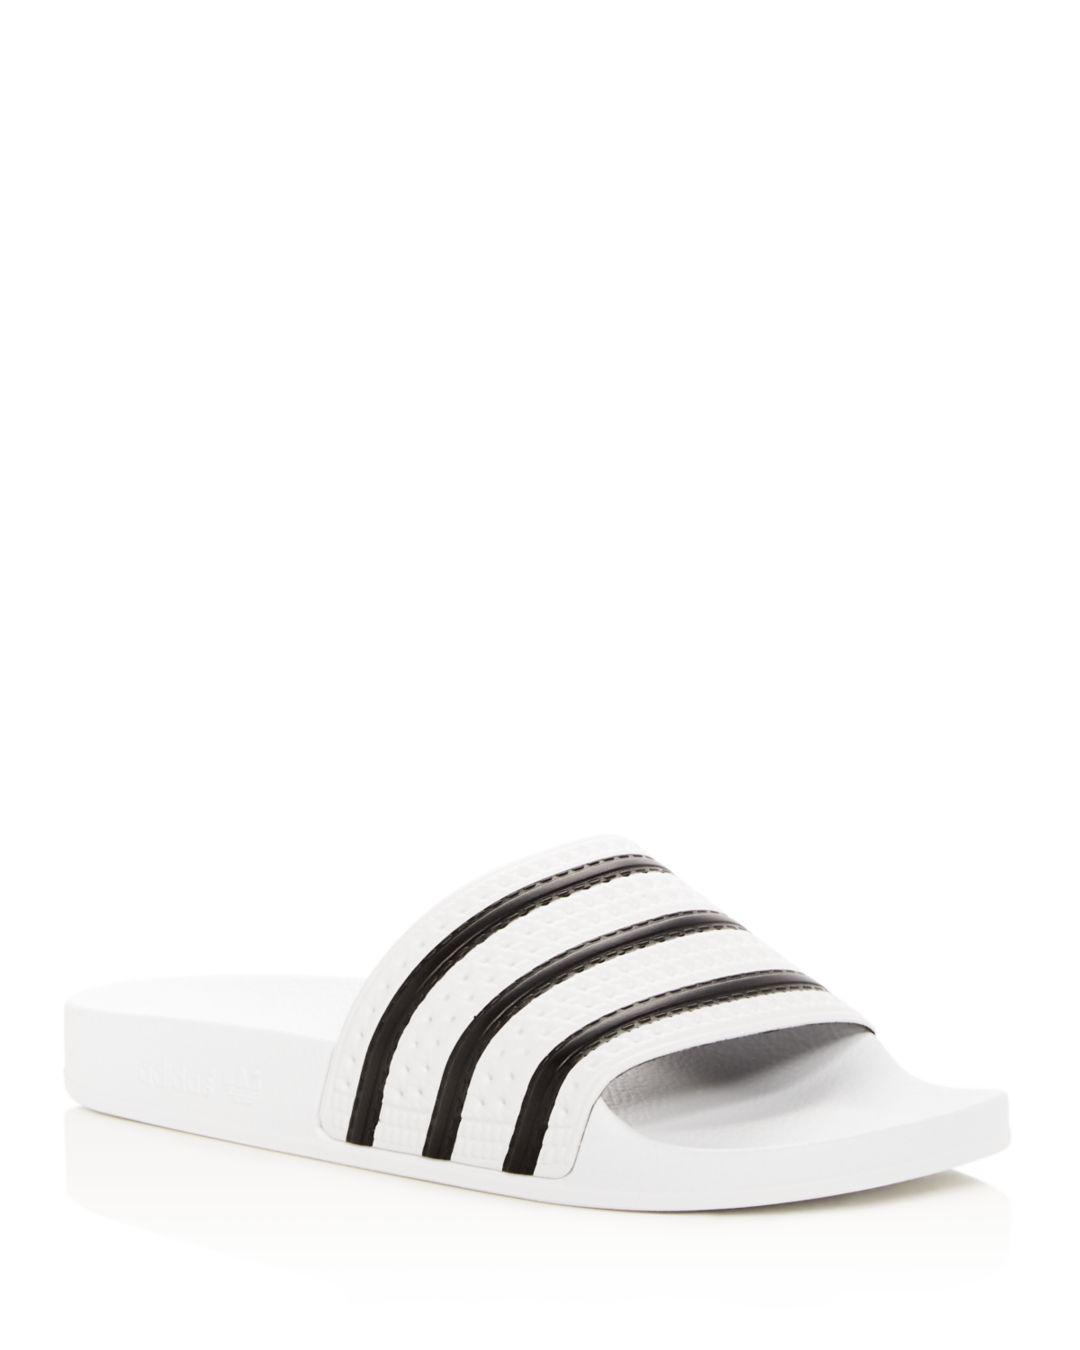 buy online a7f23 8306a Adidas - Blue Adilette Slide Sandals for Men - Lyst. View fullscreen